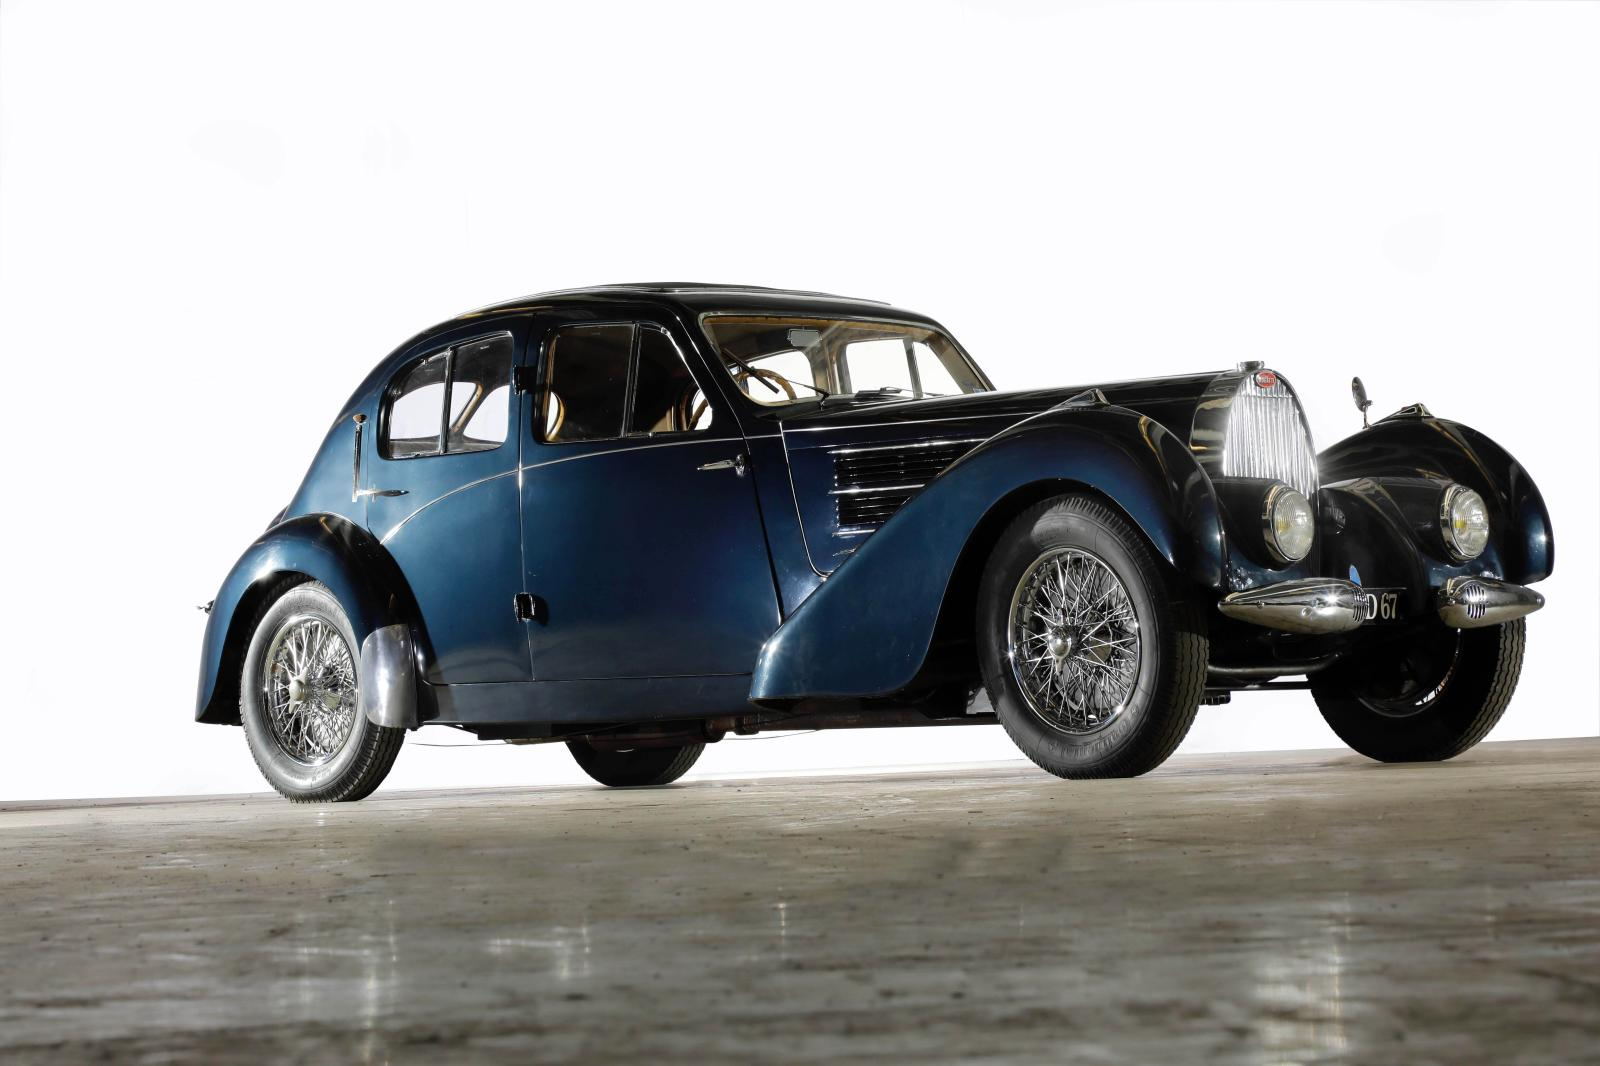 Meubles De Salon Bugatti Auctions Bugatti Type 57 Chassis 57761 Engine 552 Galib